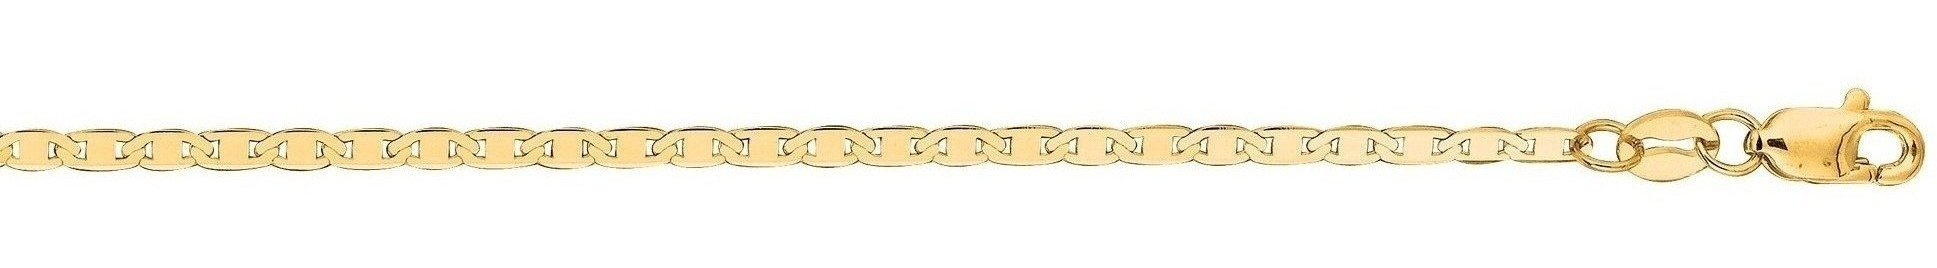 "20"" 14K Yellow Gold 1.7mm (0.07"") Polished Diamond Cut Marina Link Chain w/ Lobster Clasp"